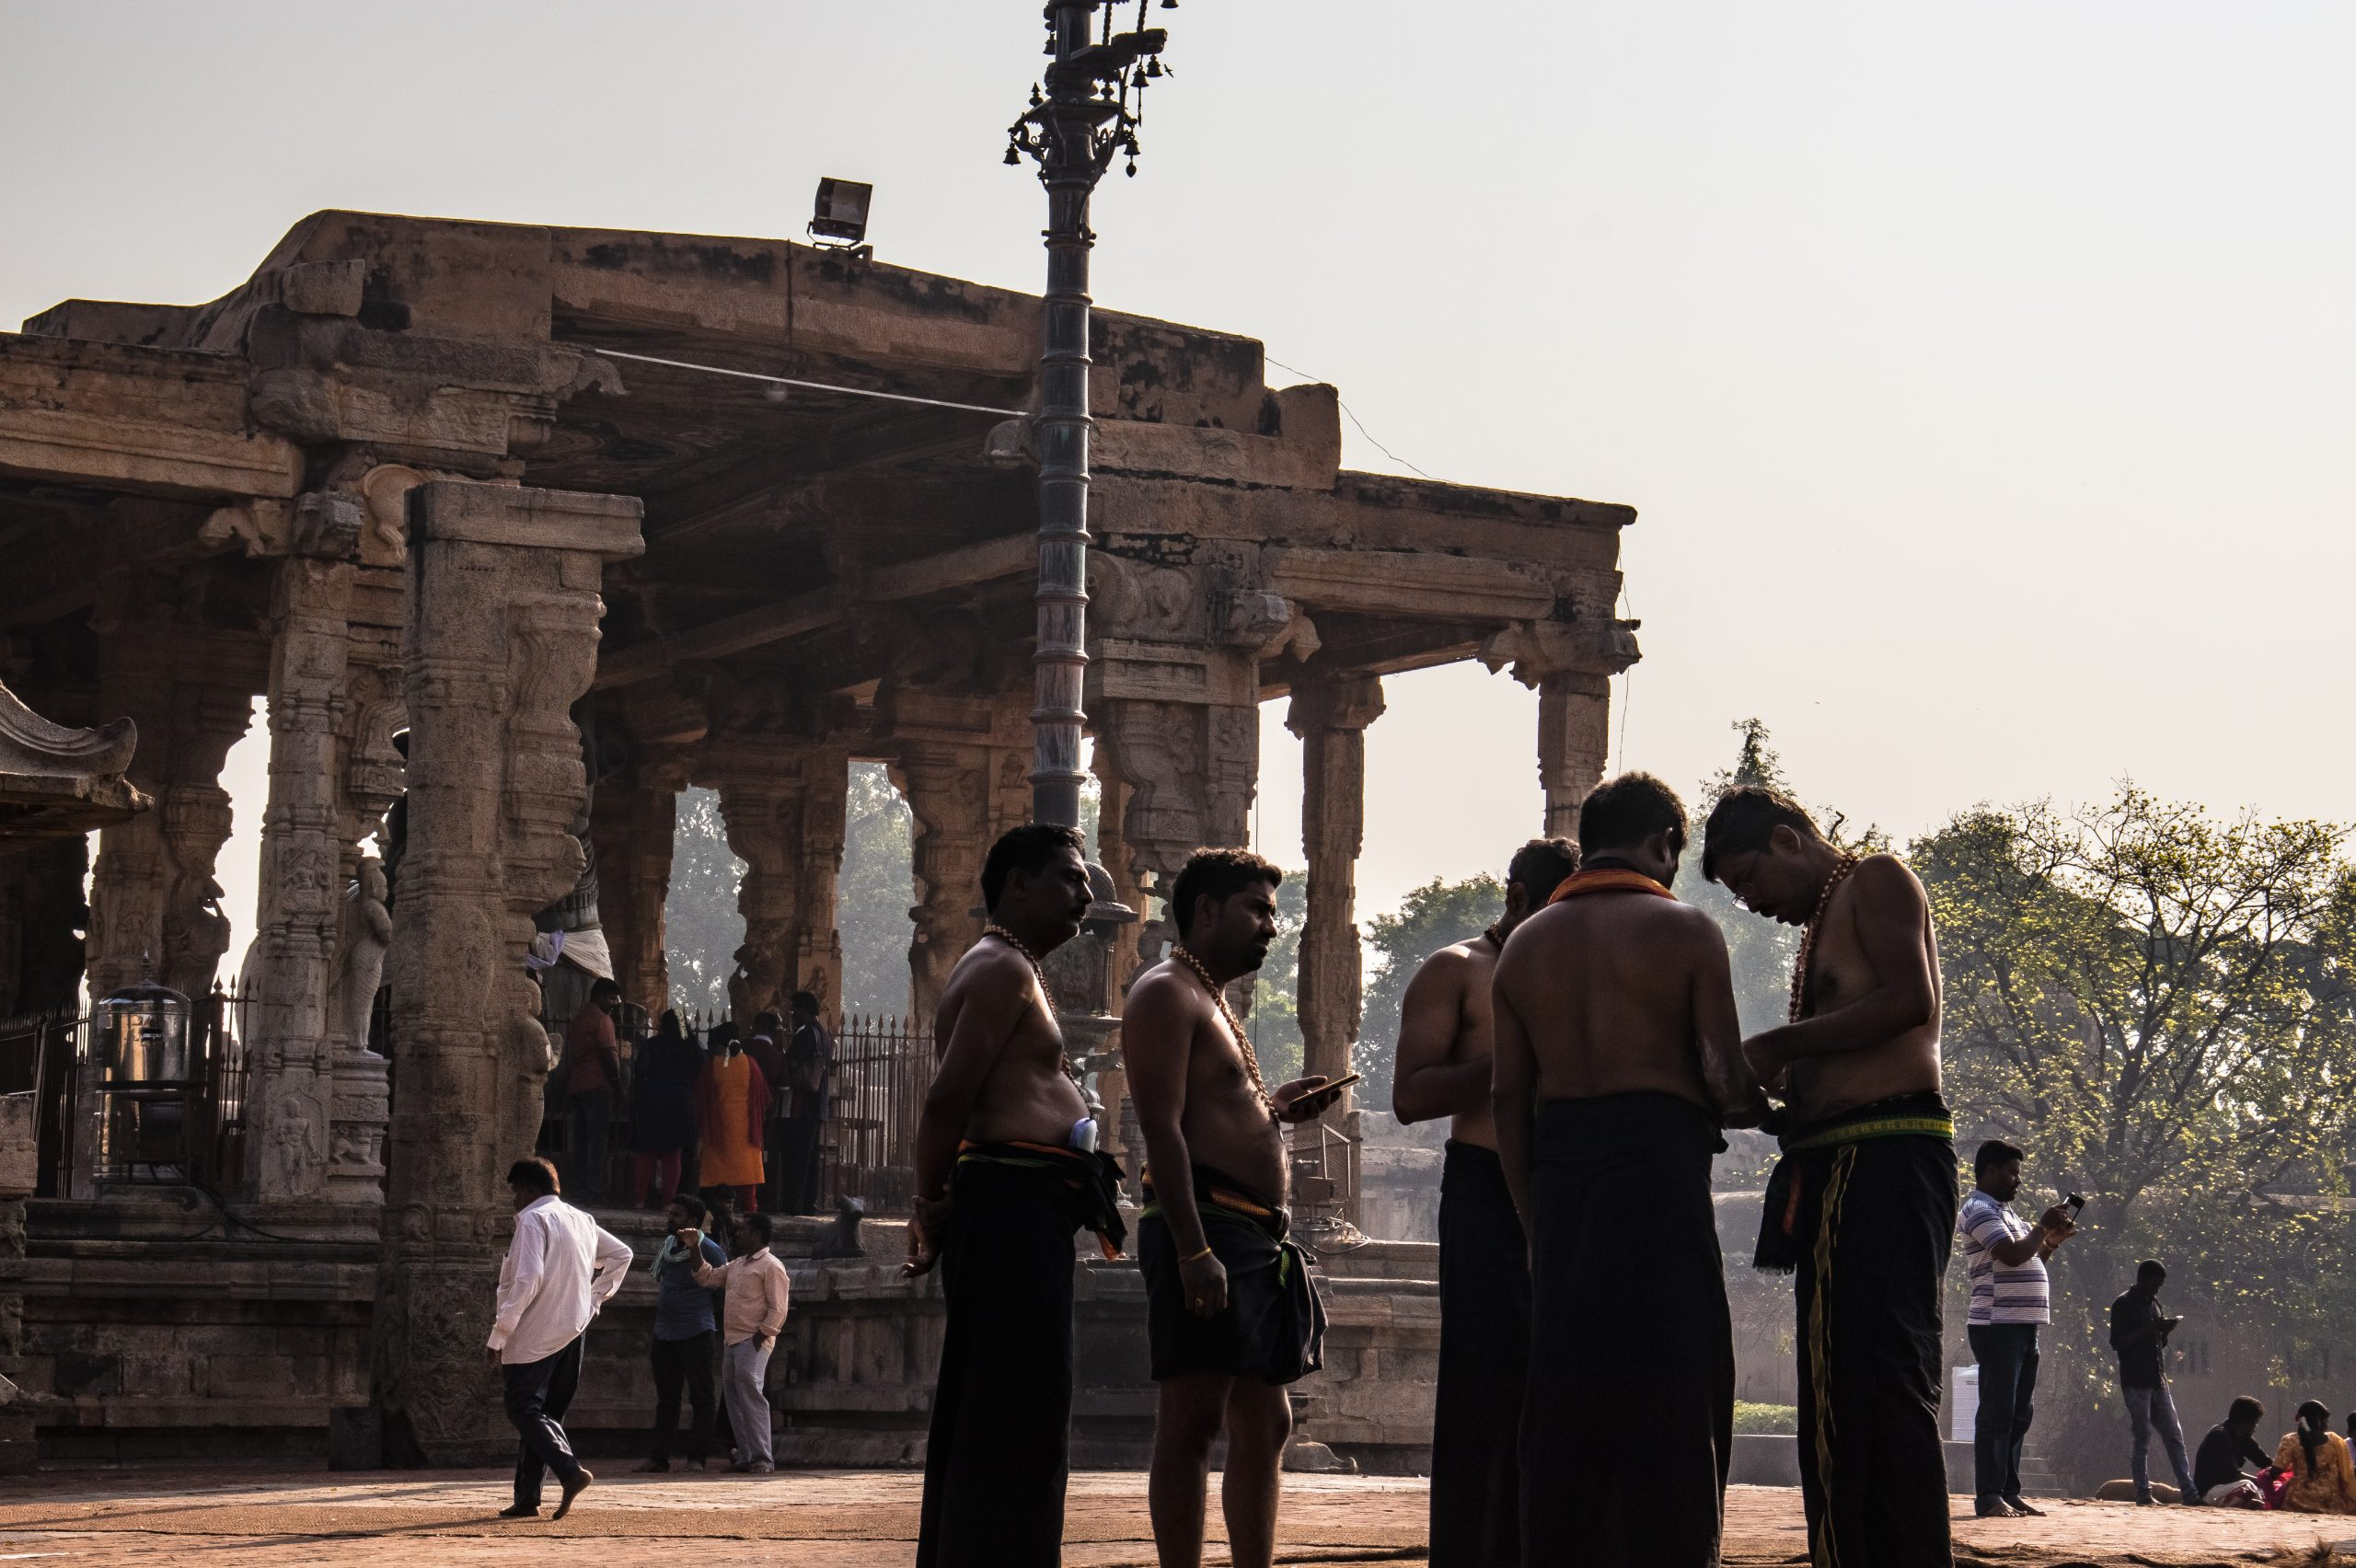 People at a Hindu temple